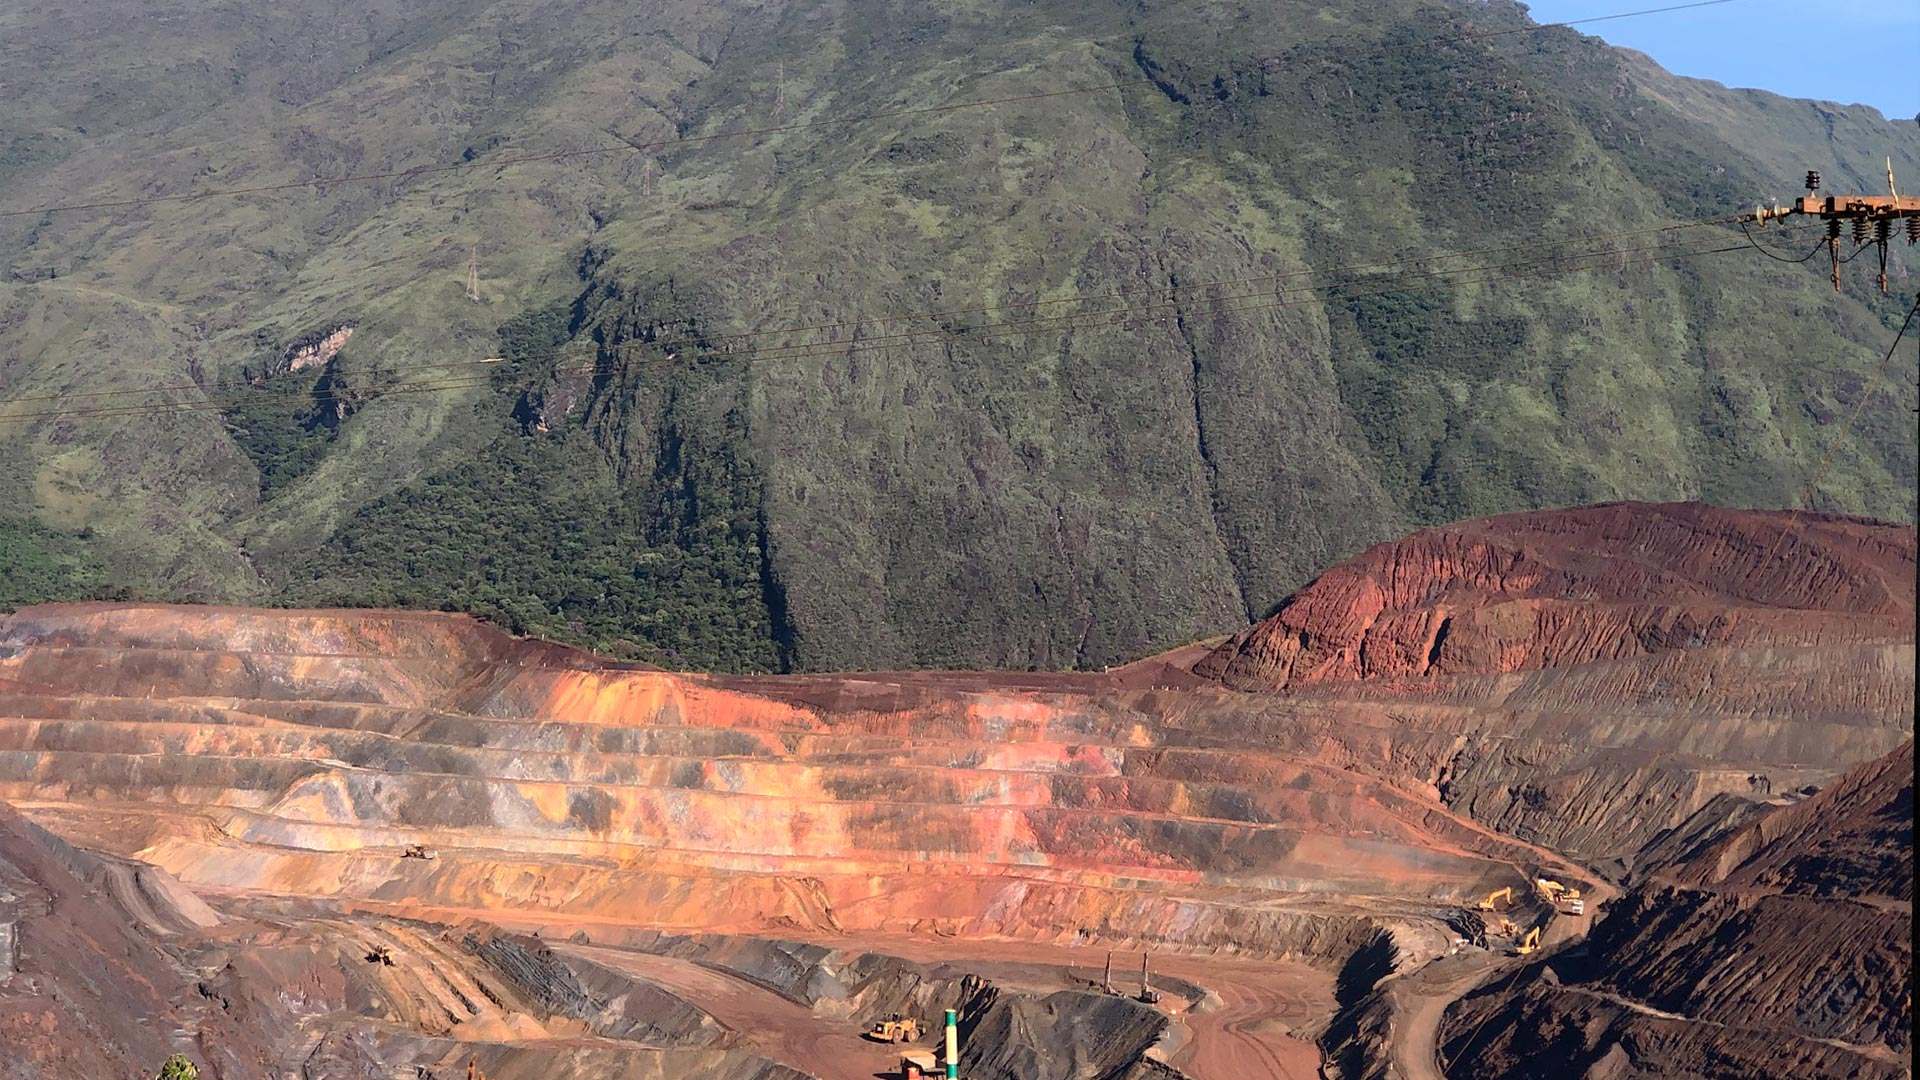 Samarco distingue Geocontrole